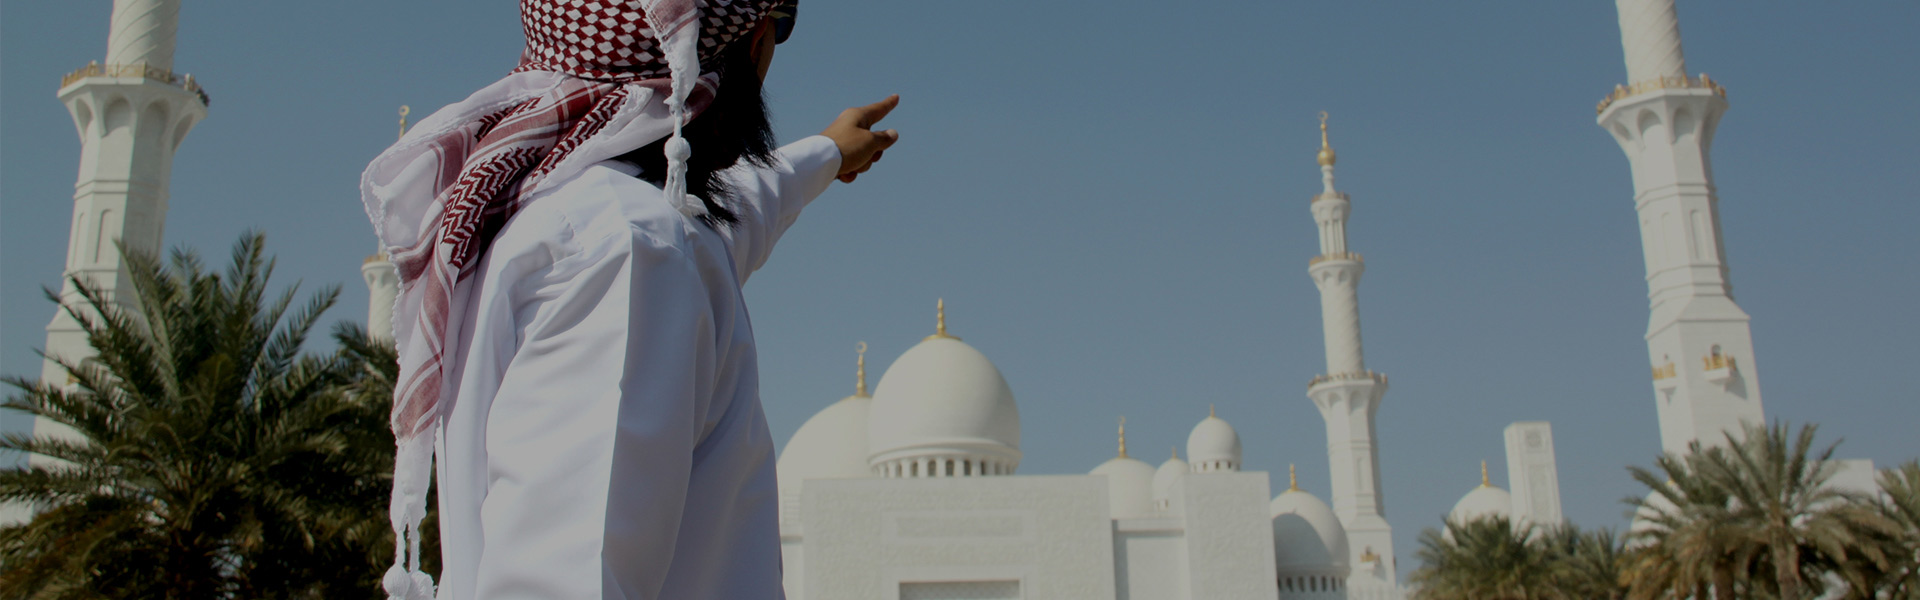 Tourist pointing to Sheikh Zayed Grand Mosque in Abu Dhabi